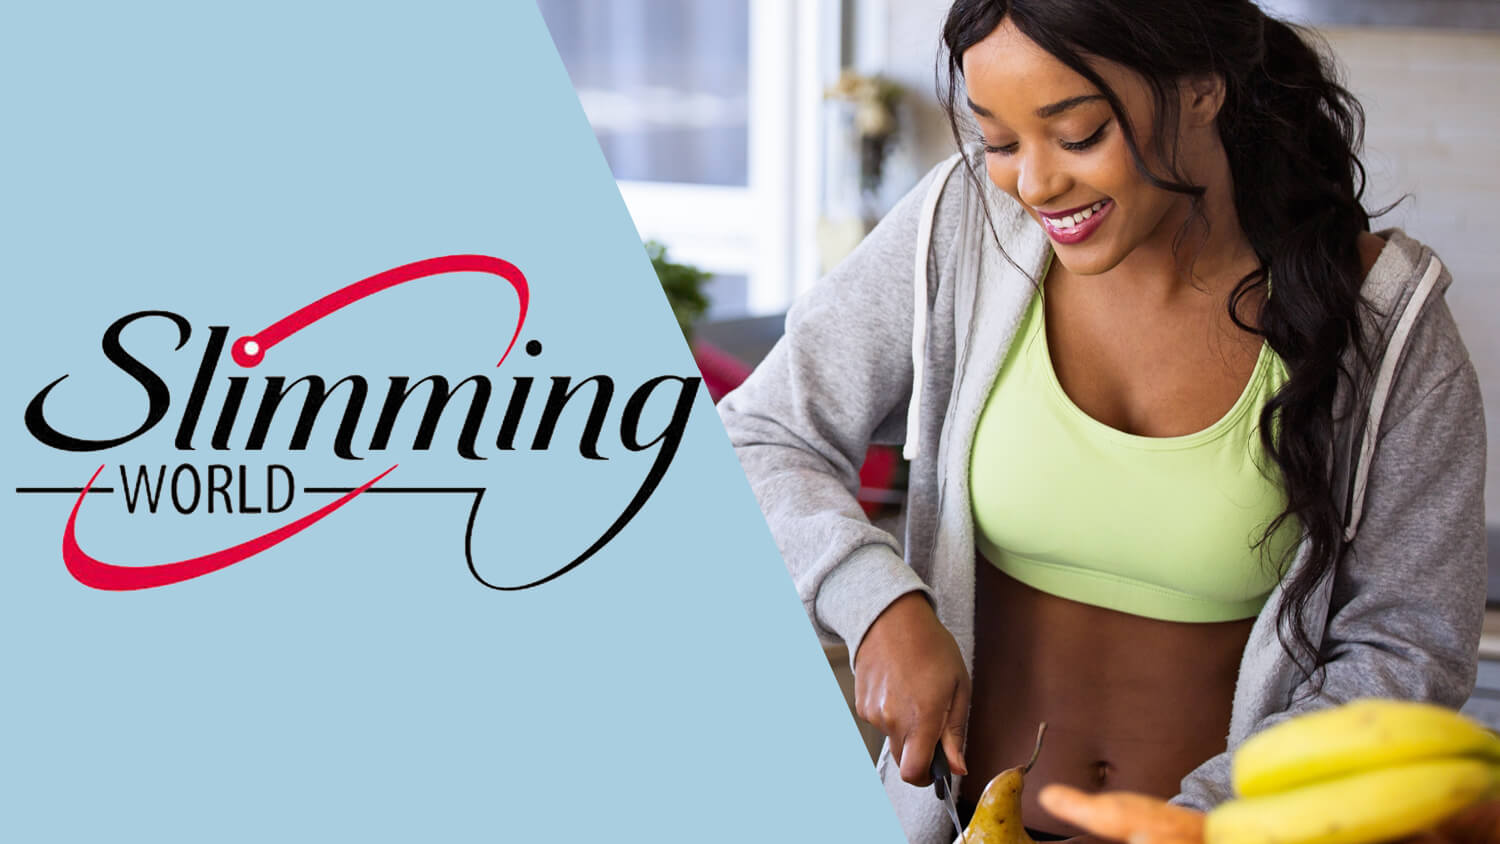 Major Weight Loss Programme Slimming World Introduces Vegan Options and Deducts Points From Dairy Yoghurt